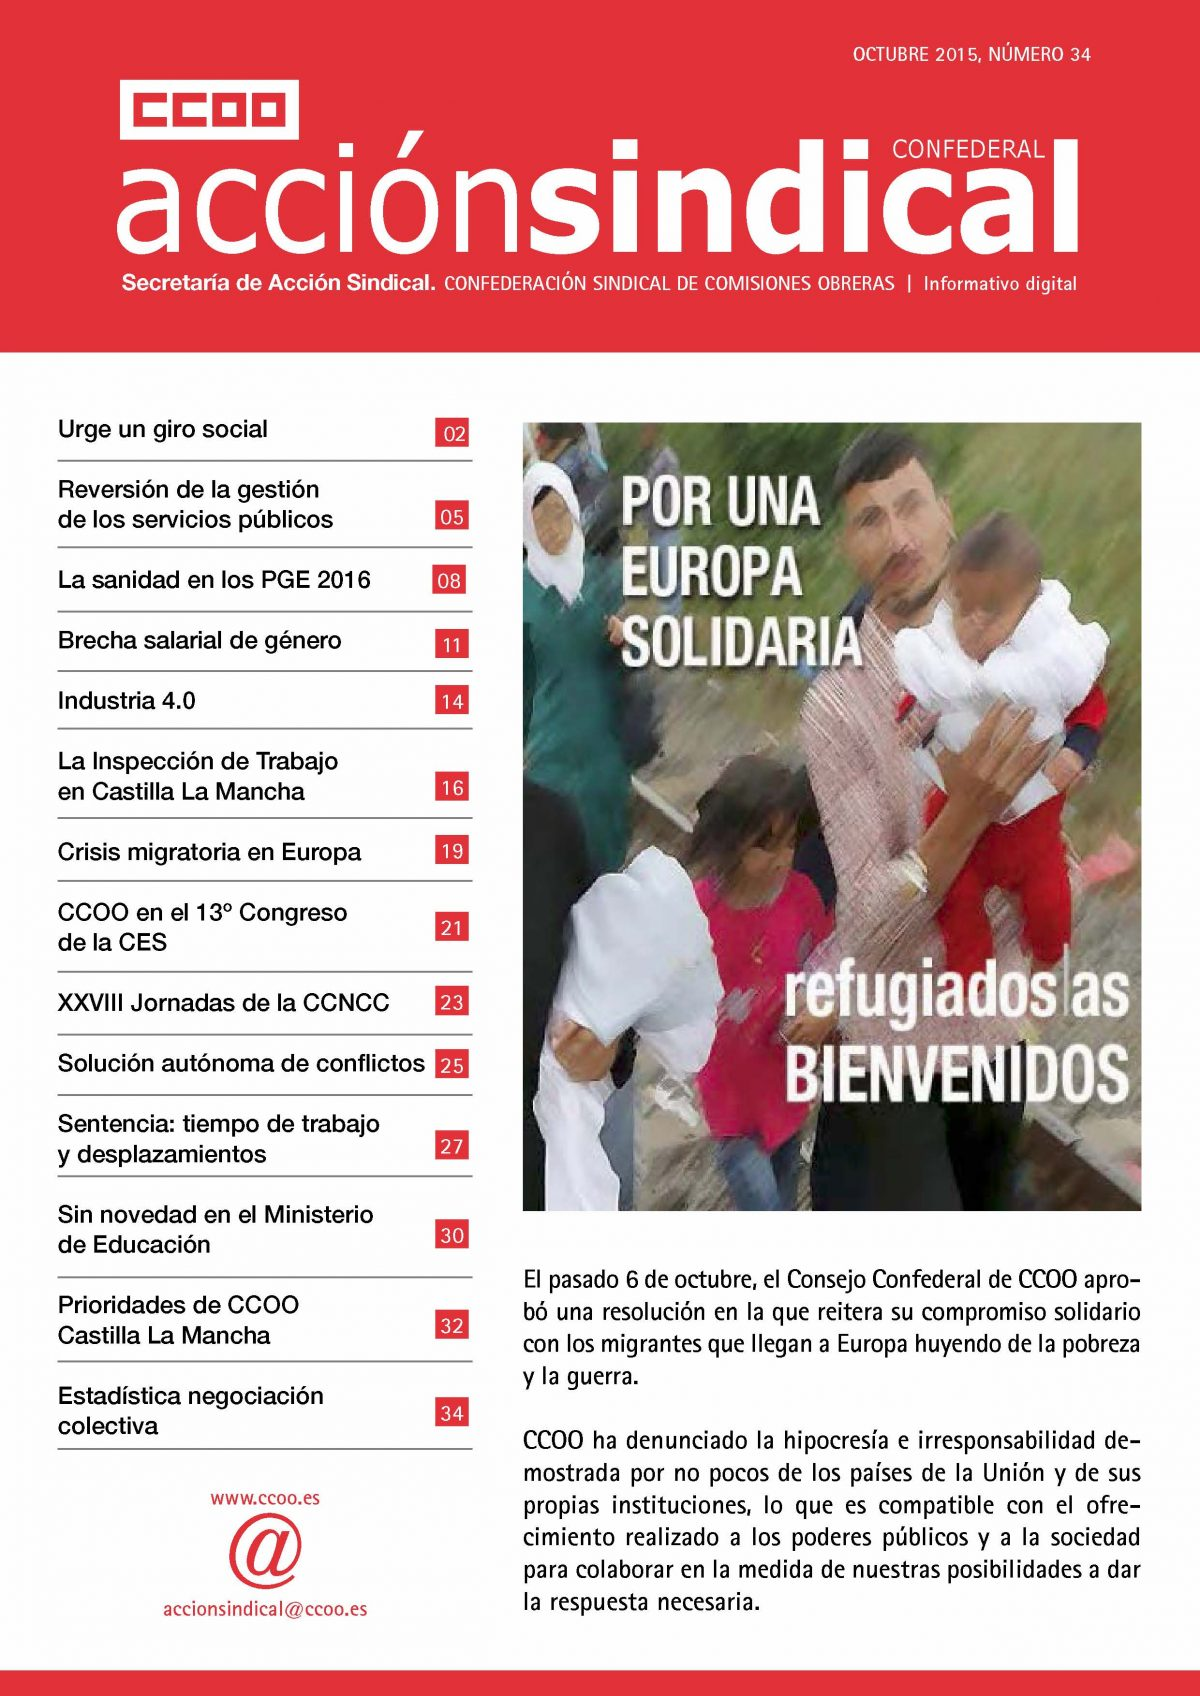 Revista de Acción Sindical Confederal, nº 34